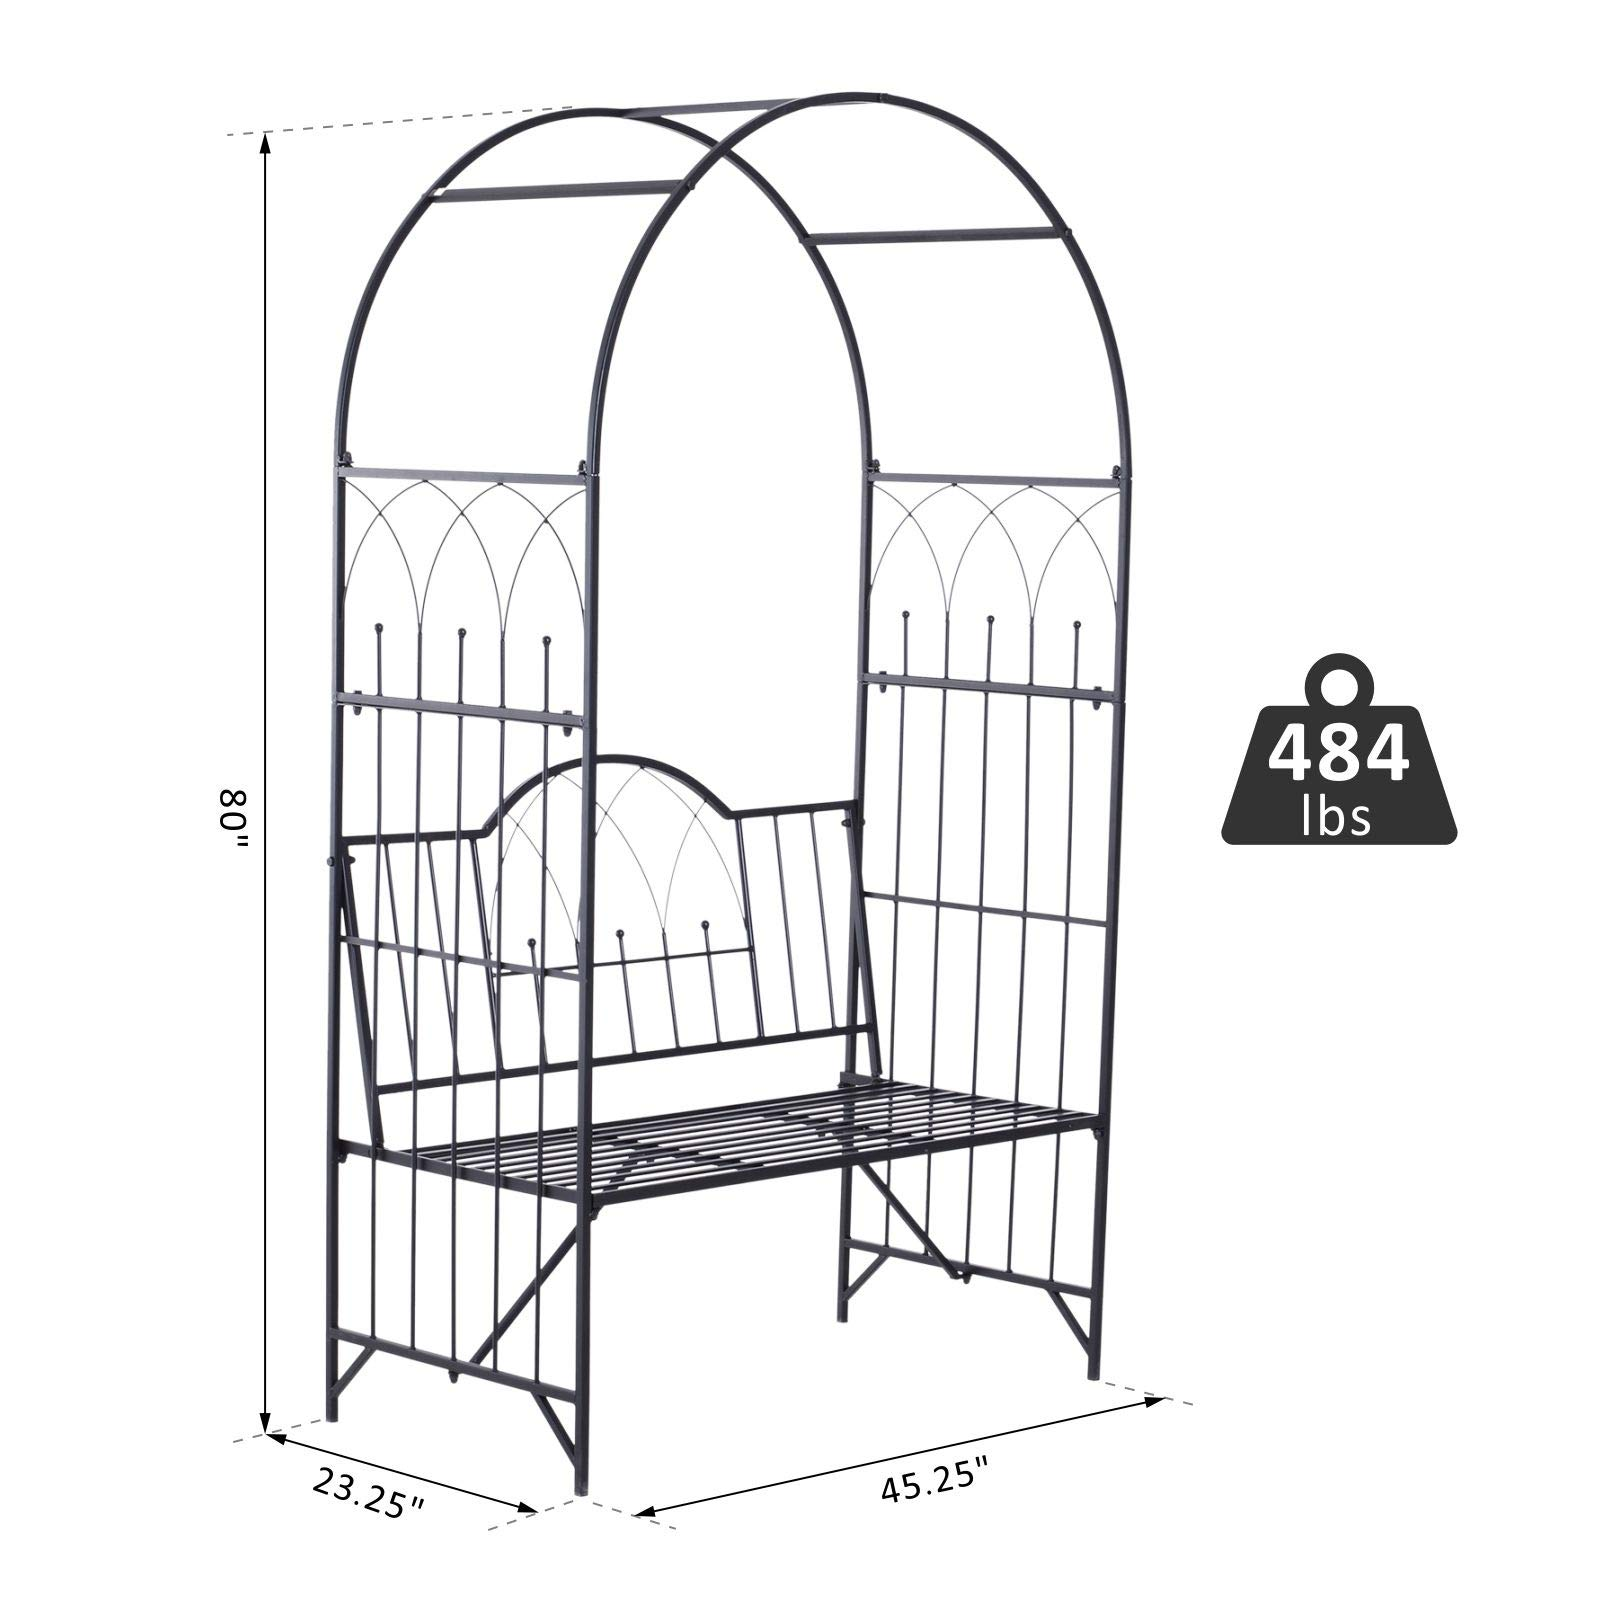 Outsunny Outdoor Garden Arbor Arch Steel Metal with Bench Seat - Black by Outsunny (Image #7)